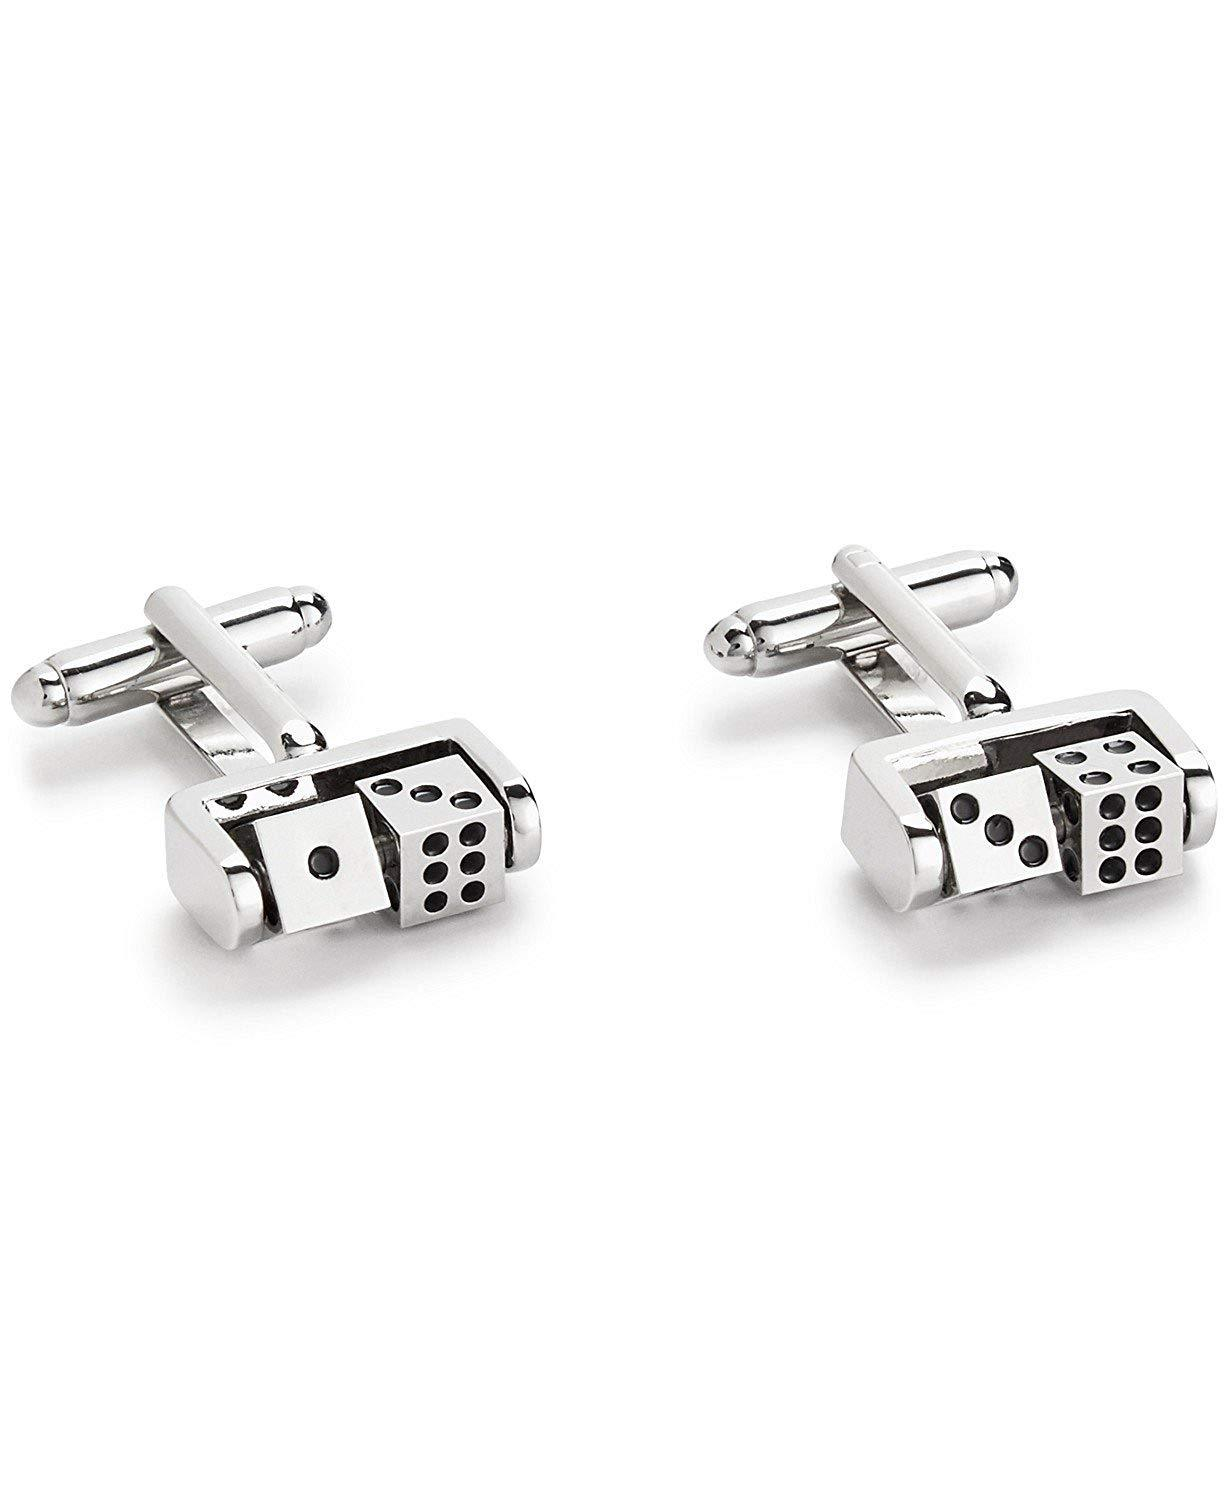 the Gift Men's Dice Cuff Links